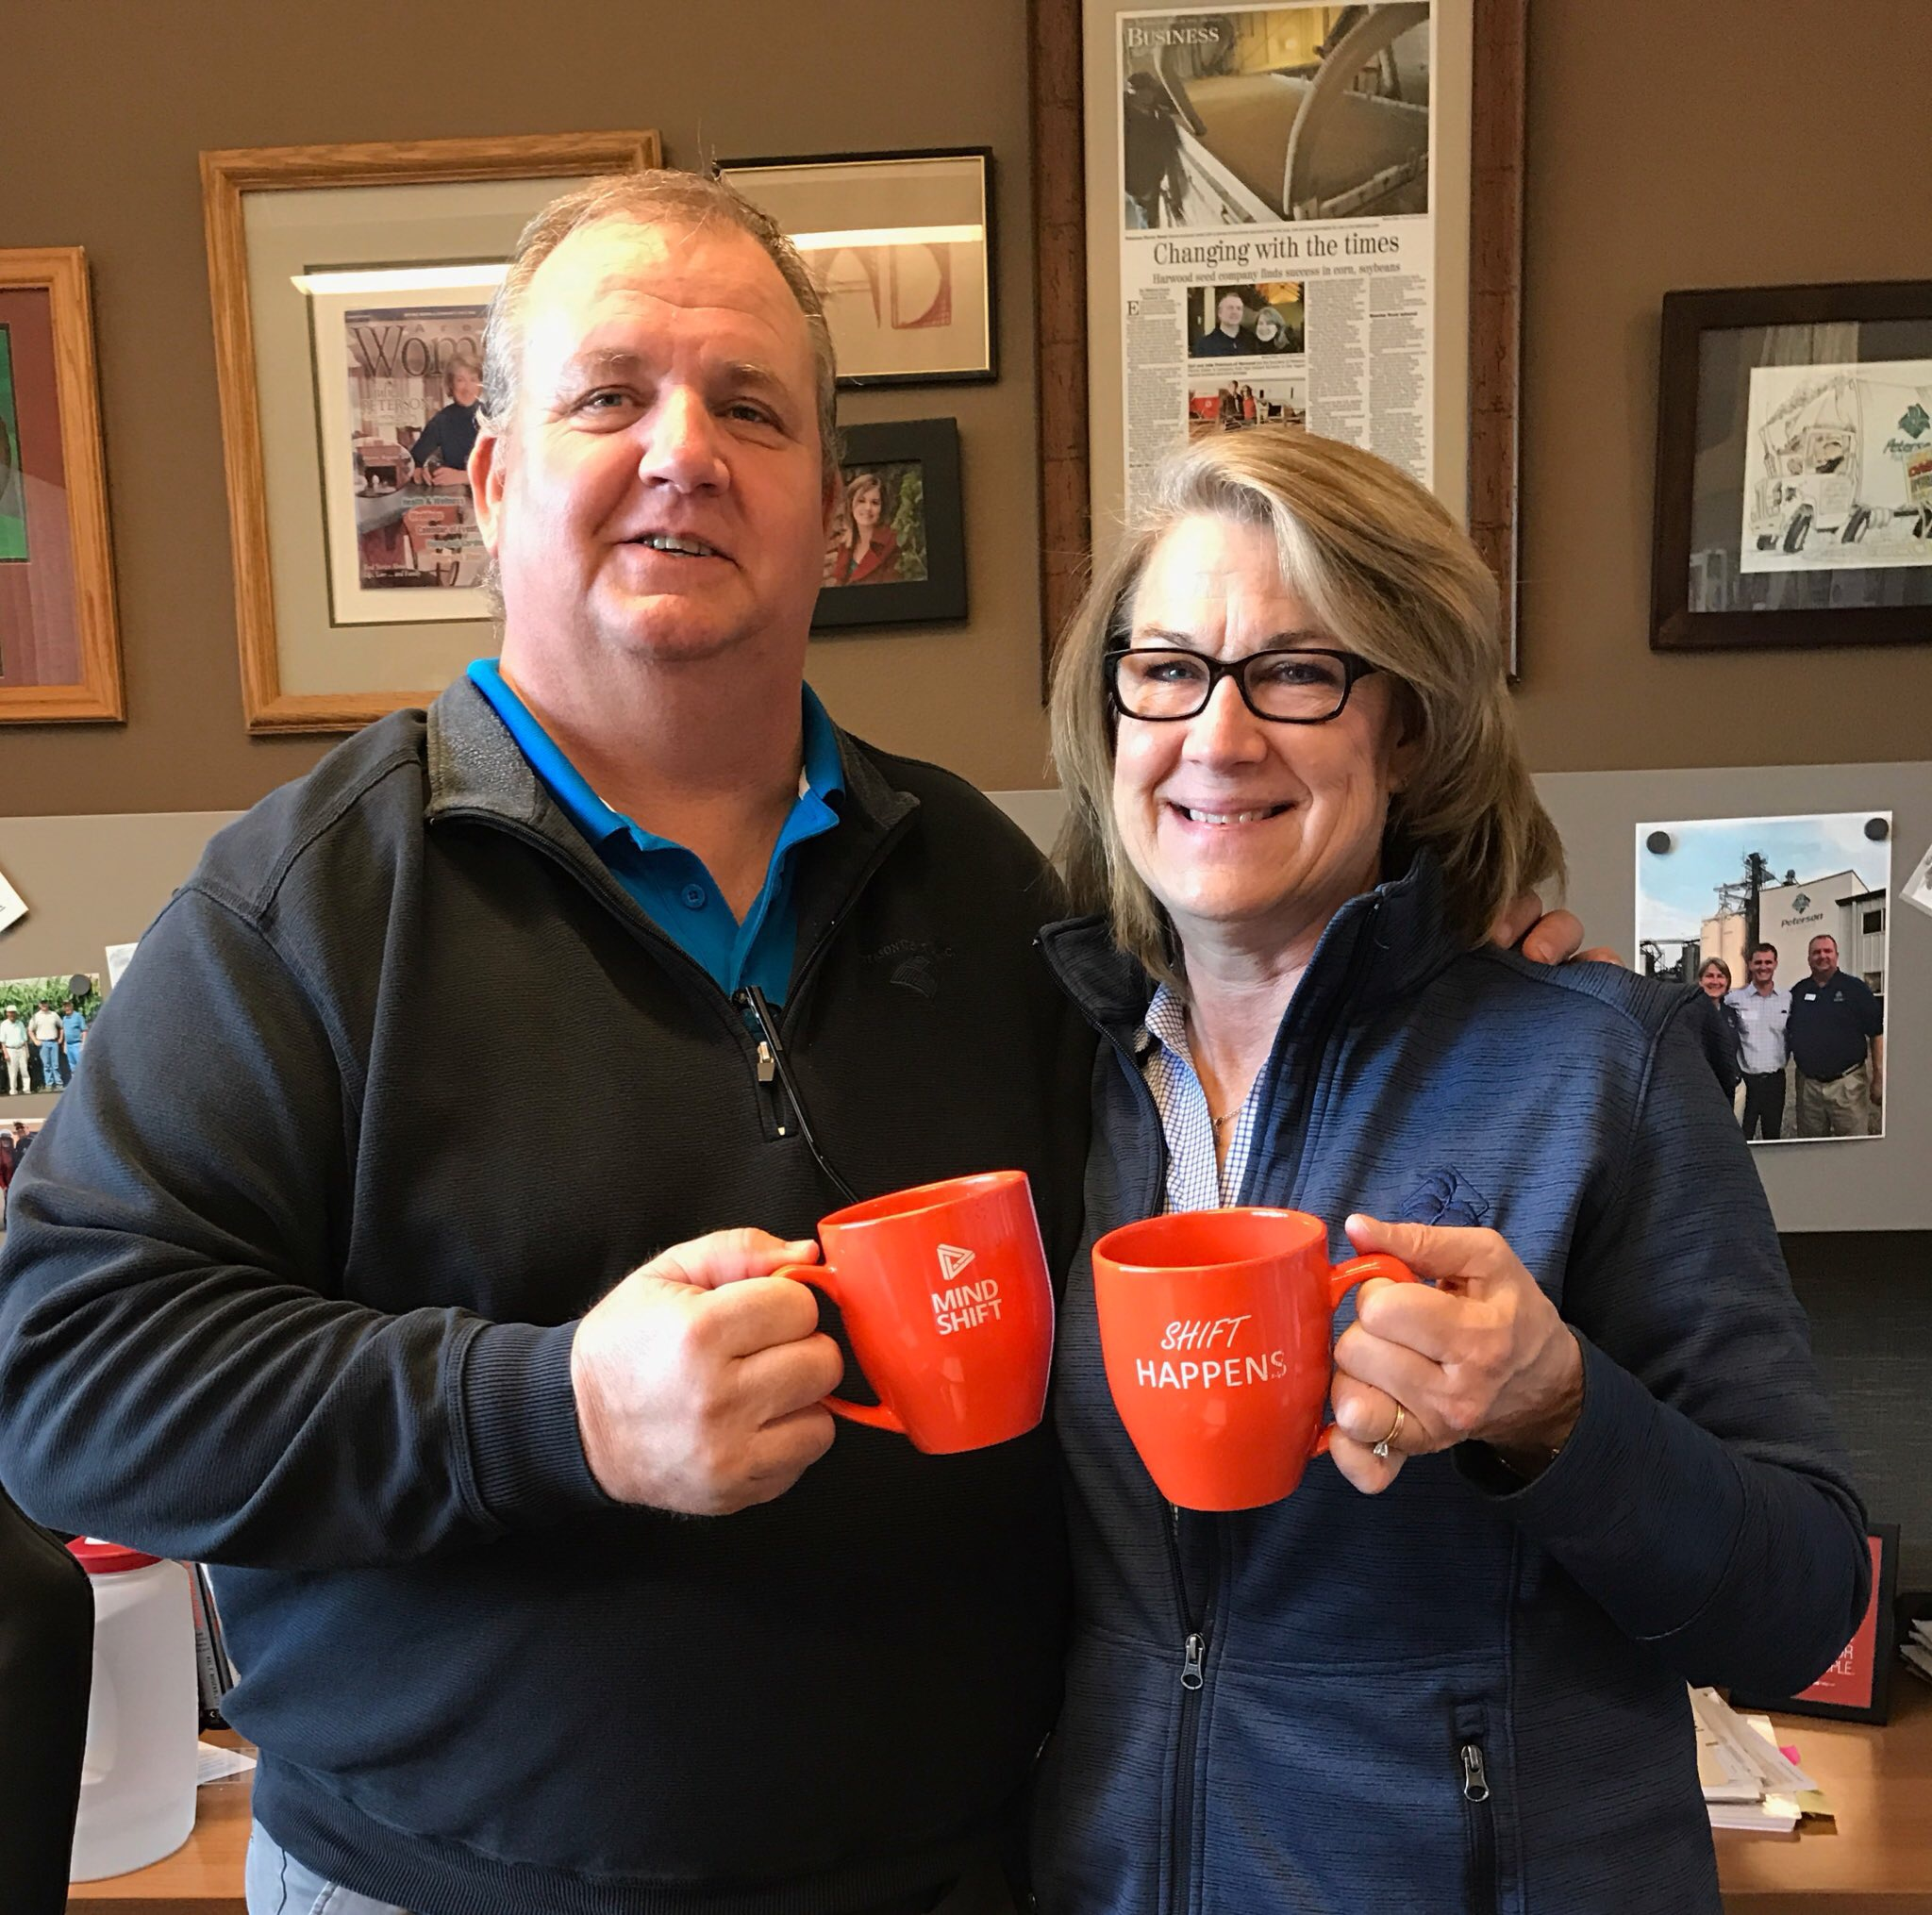 Carl and Julie Peterson's support is making shift happen. A win for the first 12 businesses that have found great employees! A win for the 22 talented people who have found great employers!